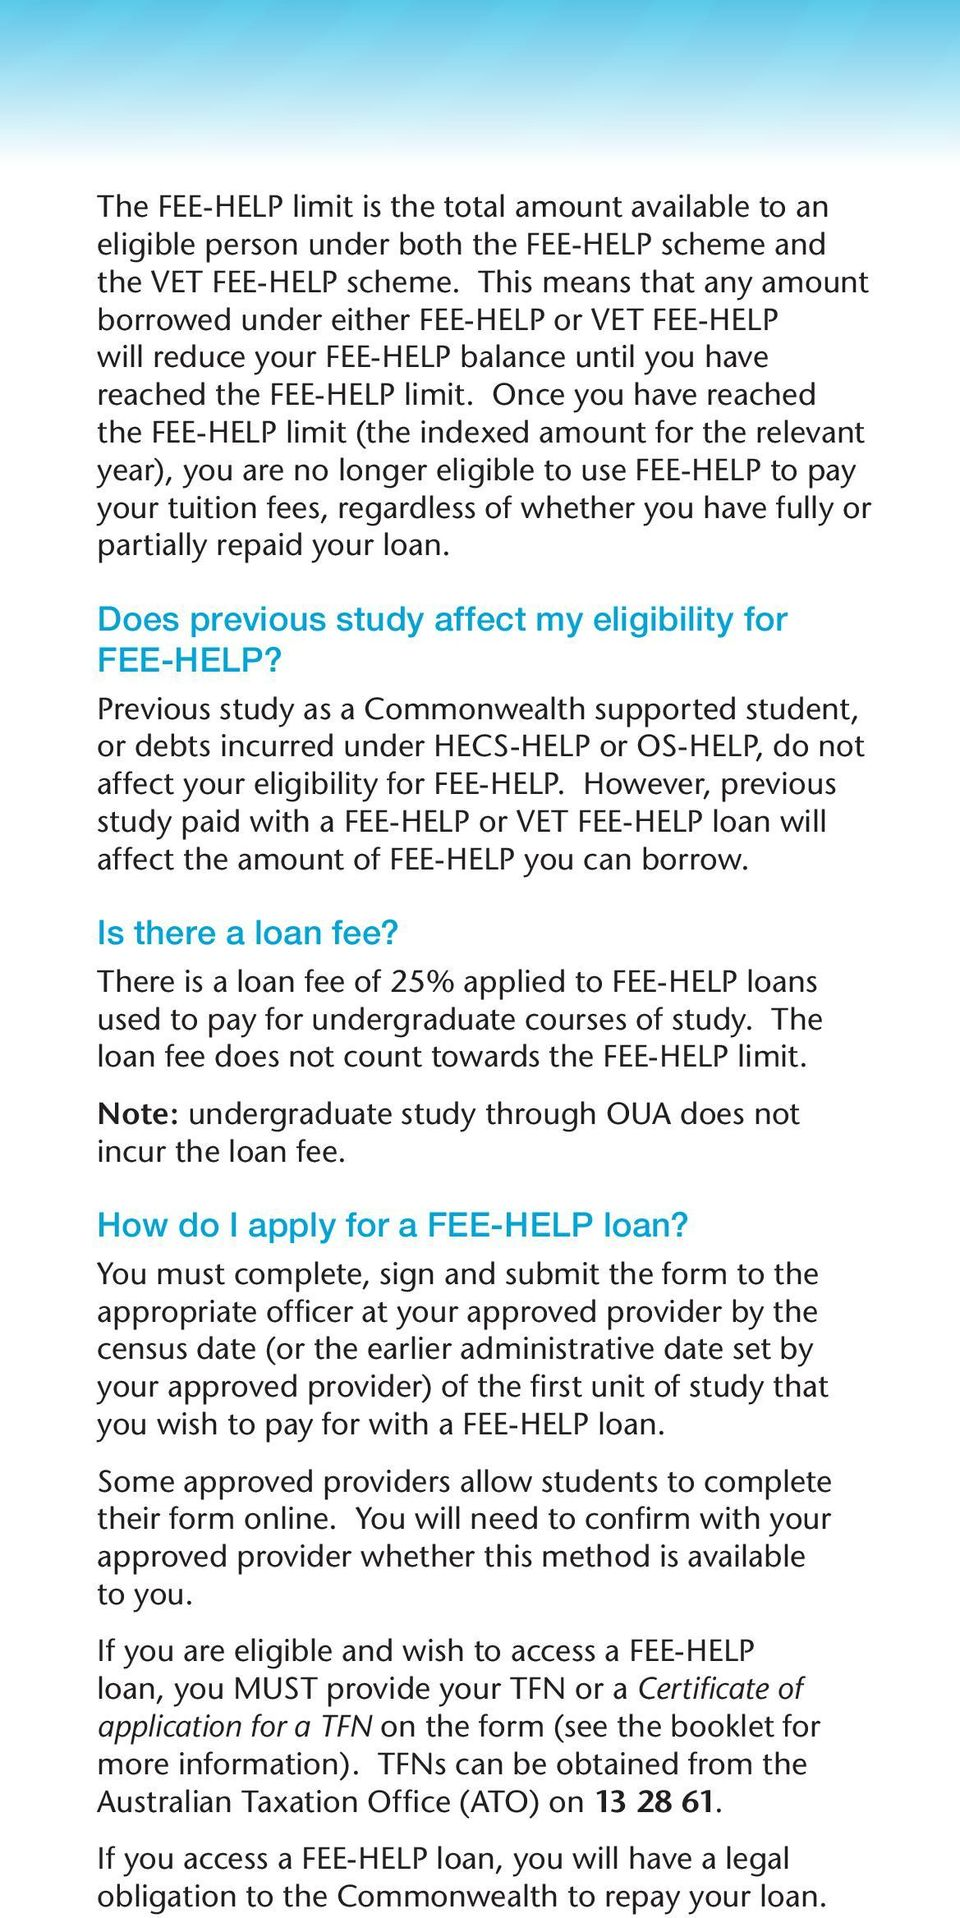 Once you have reached the FEE-HELP limit (the indexed amount for the relevant year), you are no longer eligible to use FEE-HELP to pay your tuition fees, regardless of whether you have fully or